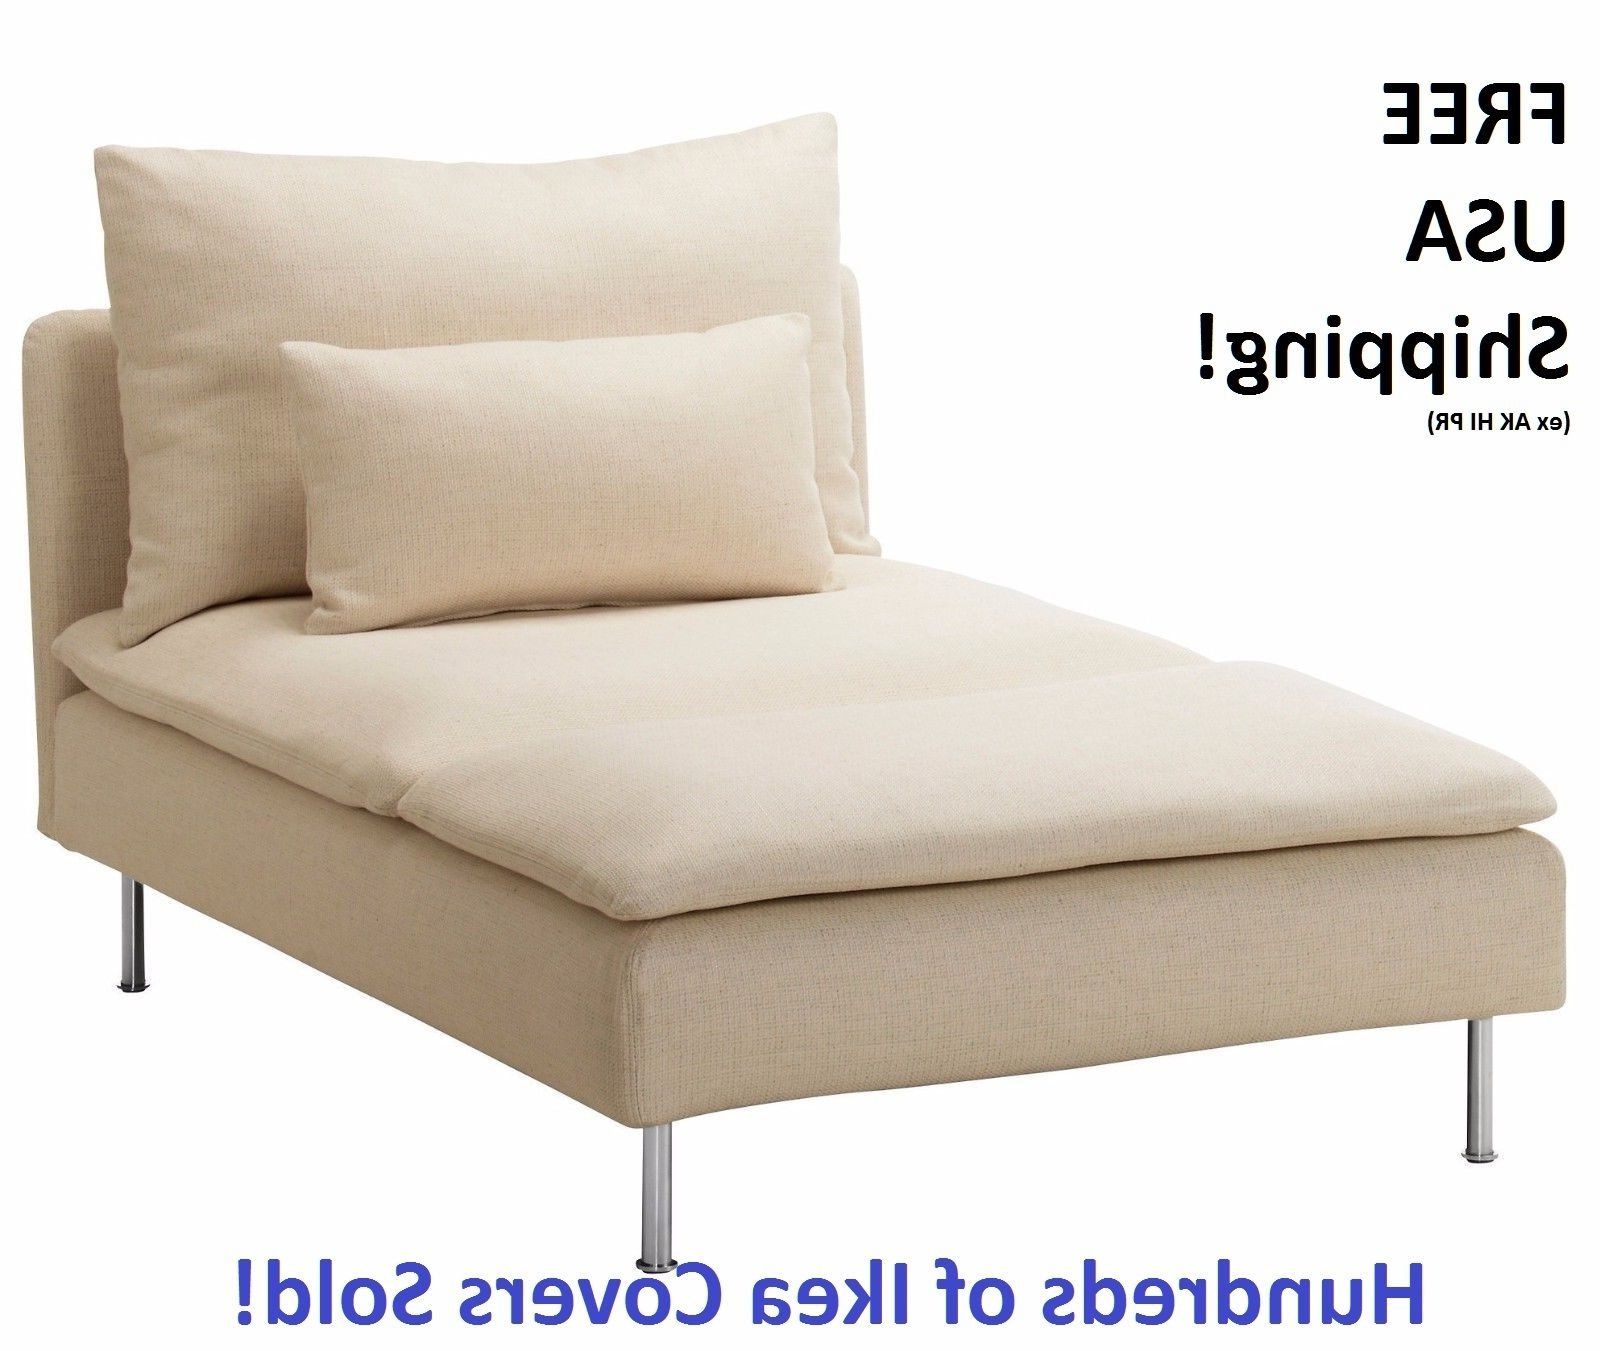 Chaise Lounge Slipcovers With Regard To Fashionable Chaise Lounge Slipcover (View 12 of 15)